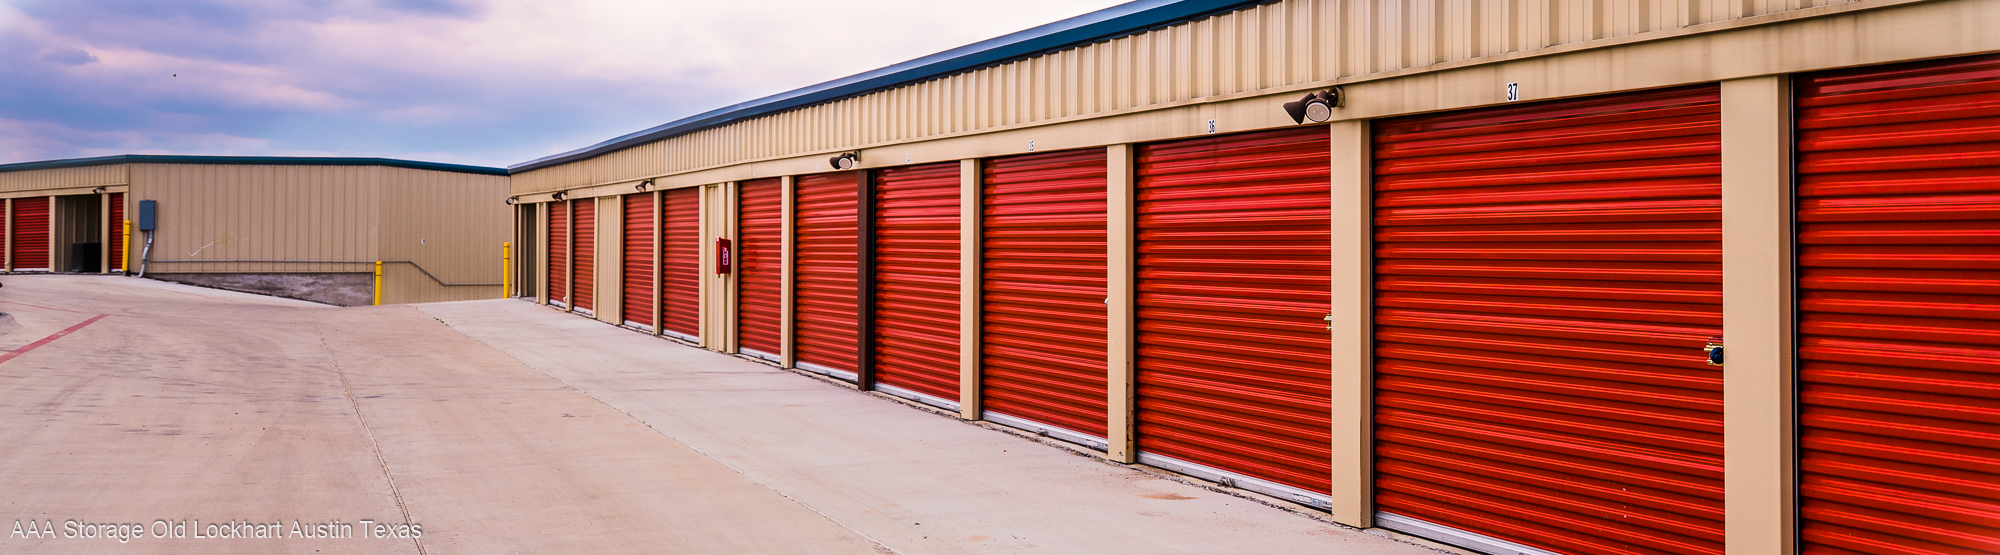 Austin TX Self Storage - Drive Up Units, Storage Units